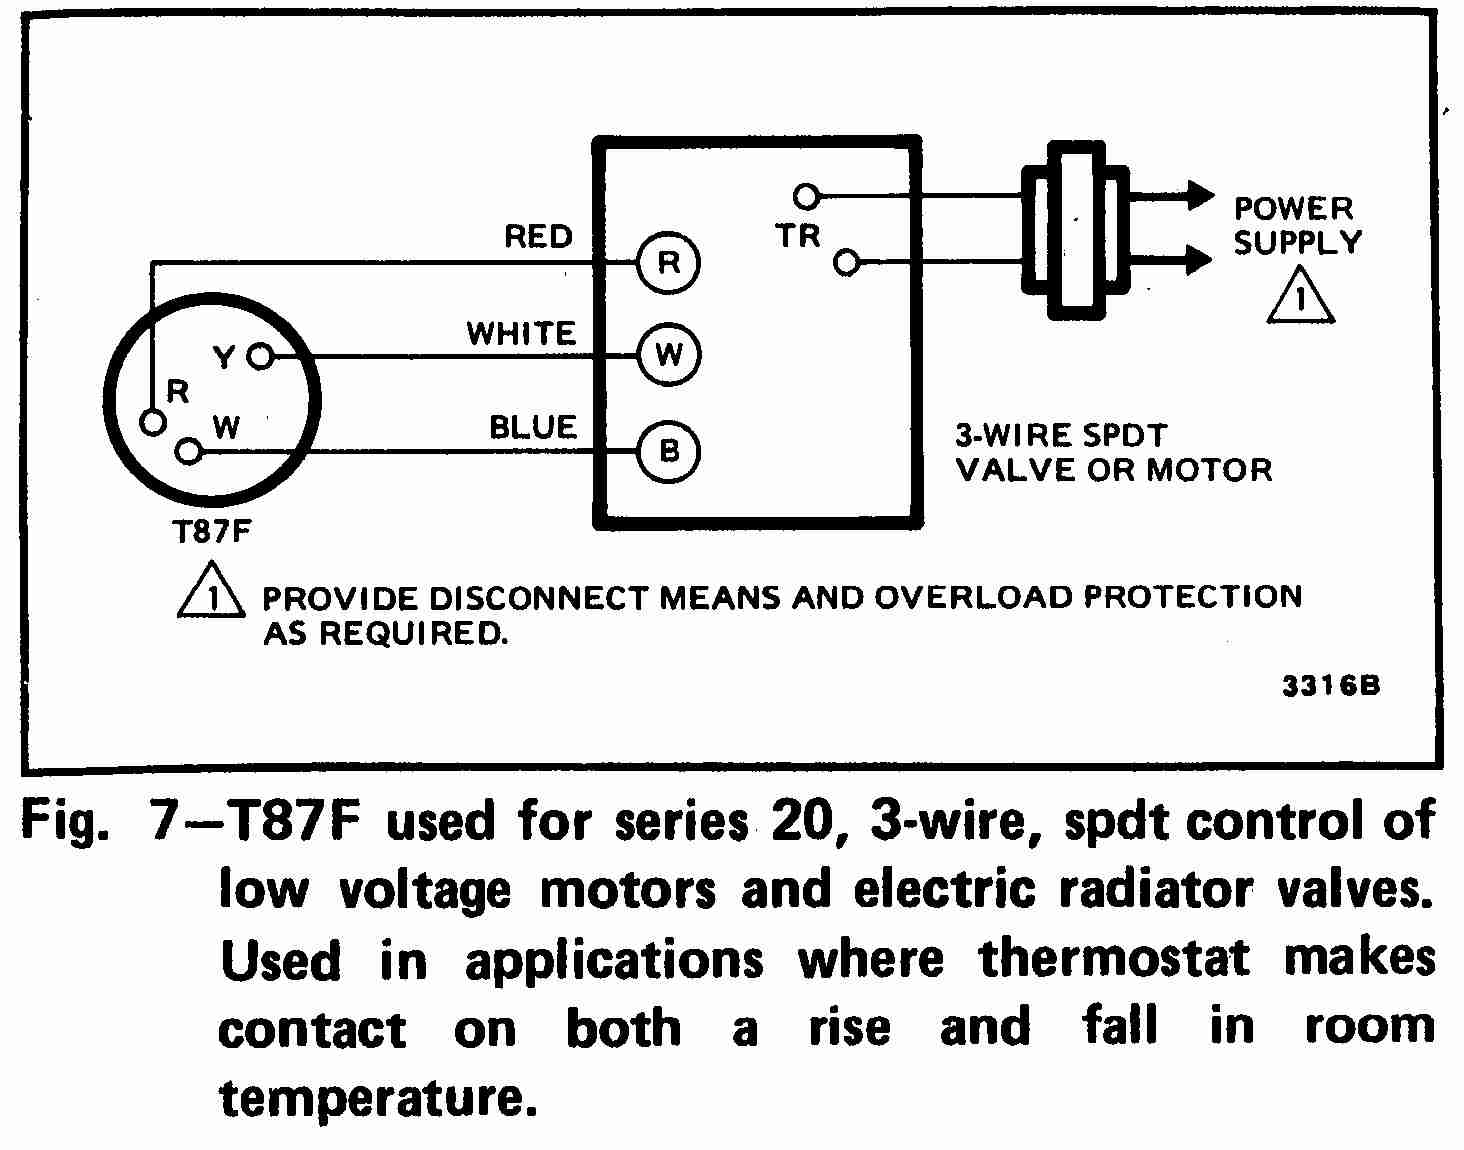 room thermostat wiring diagrams for hvac systems wiring diagram for thermostat in a damon 1994 wiring diagram for thermostat honeywell